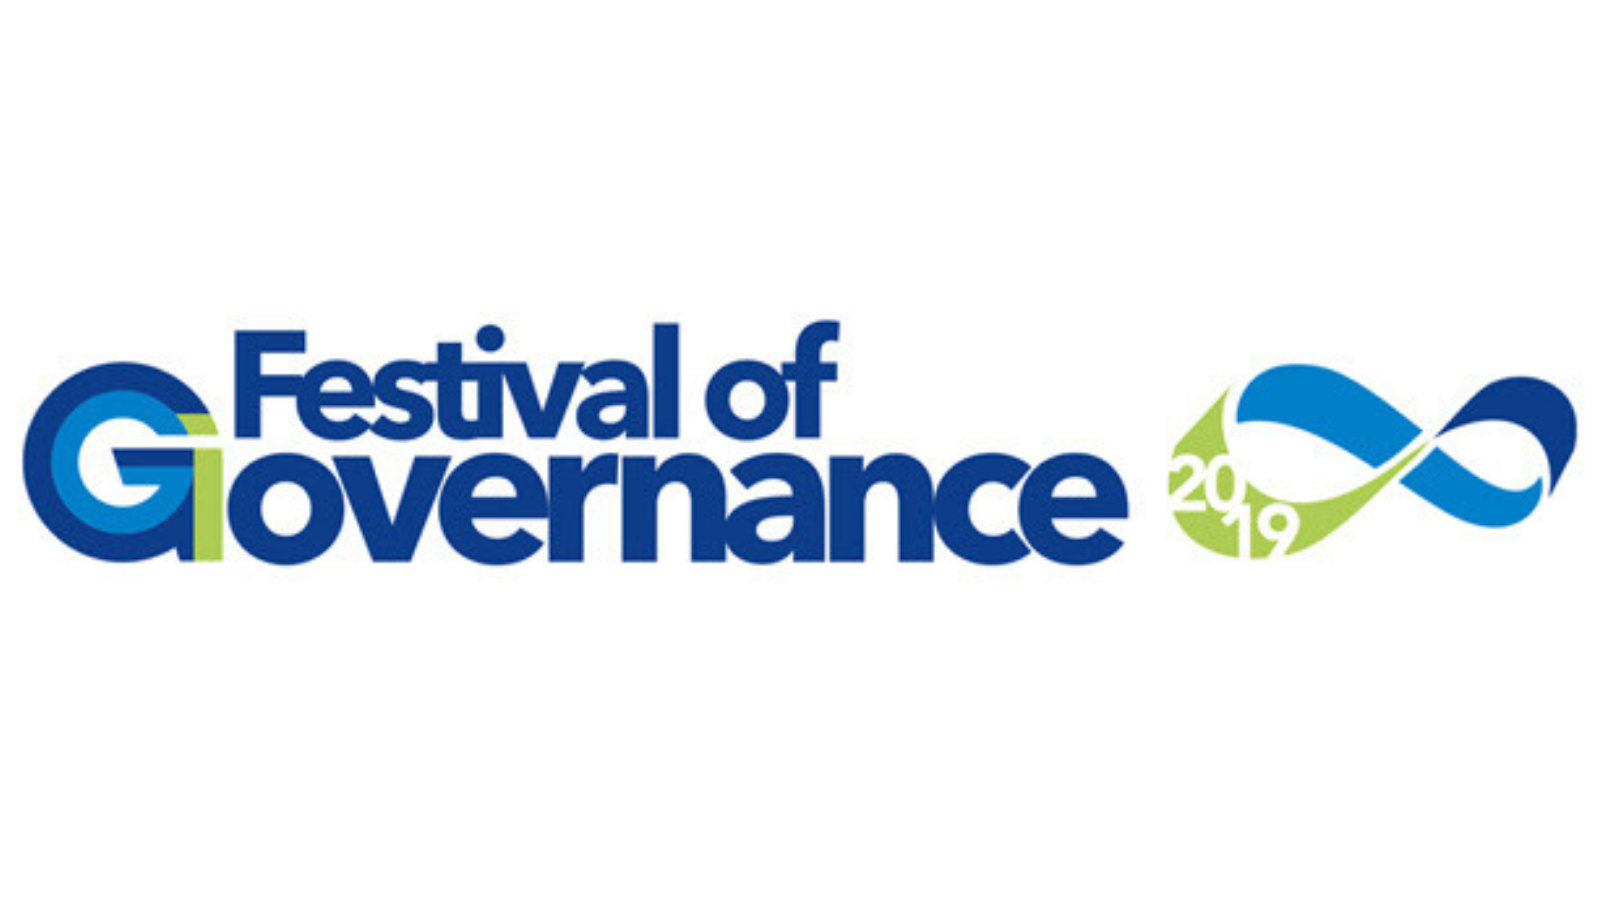 Festival of Governance logo